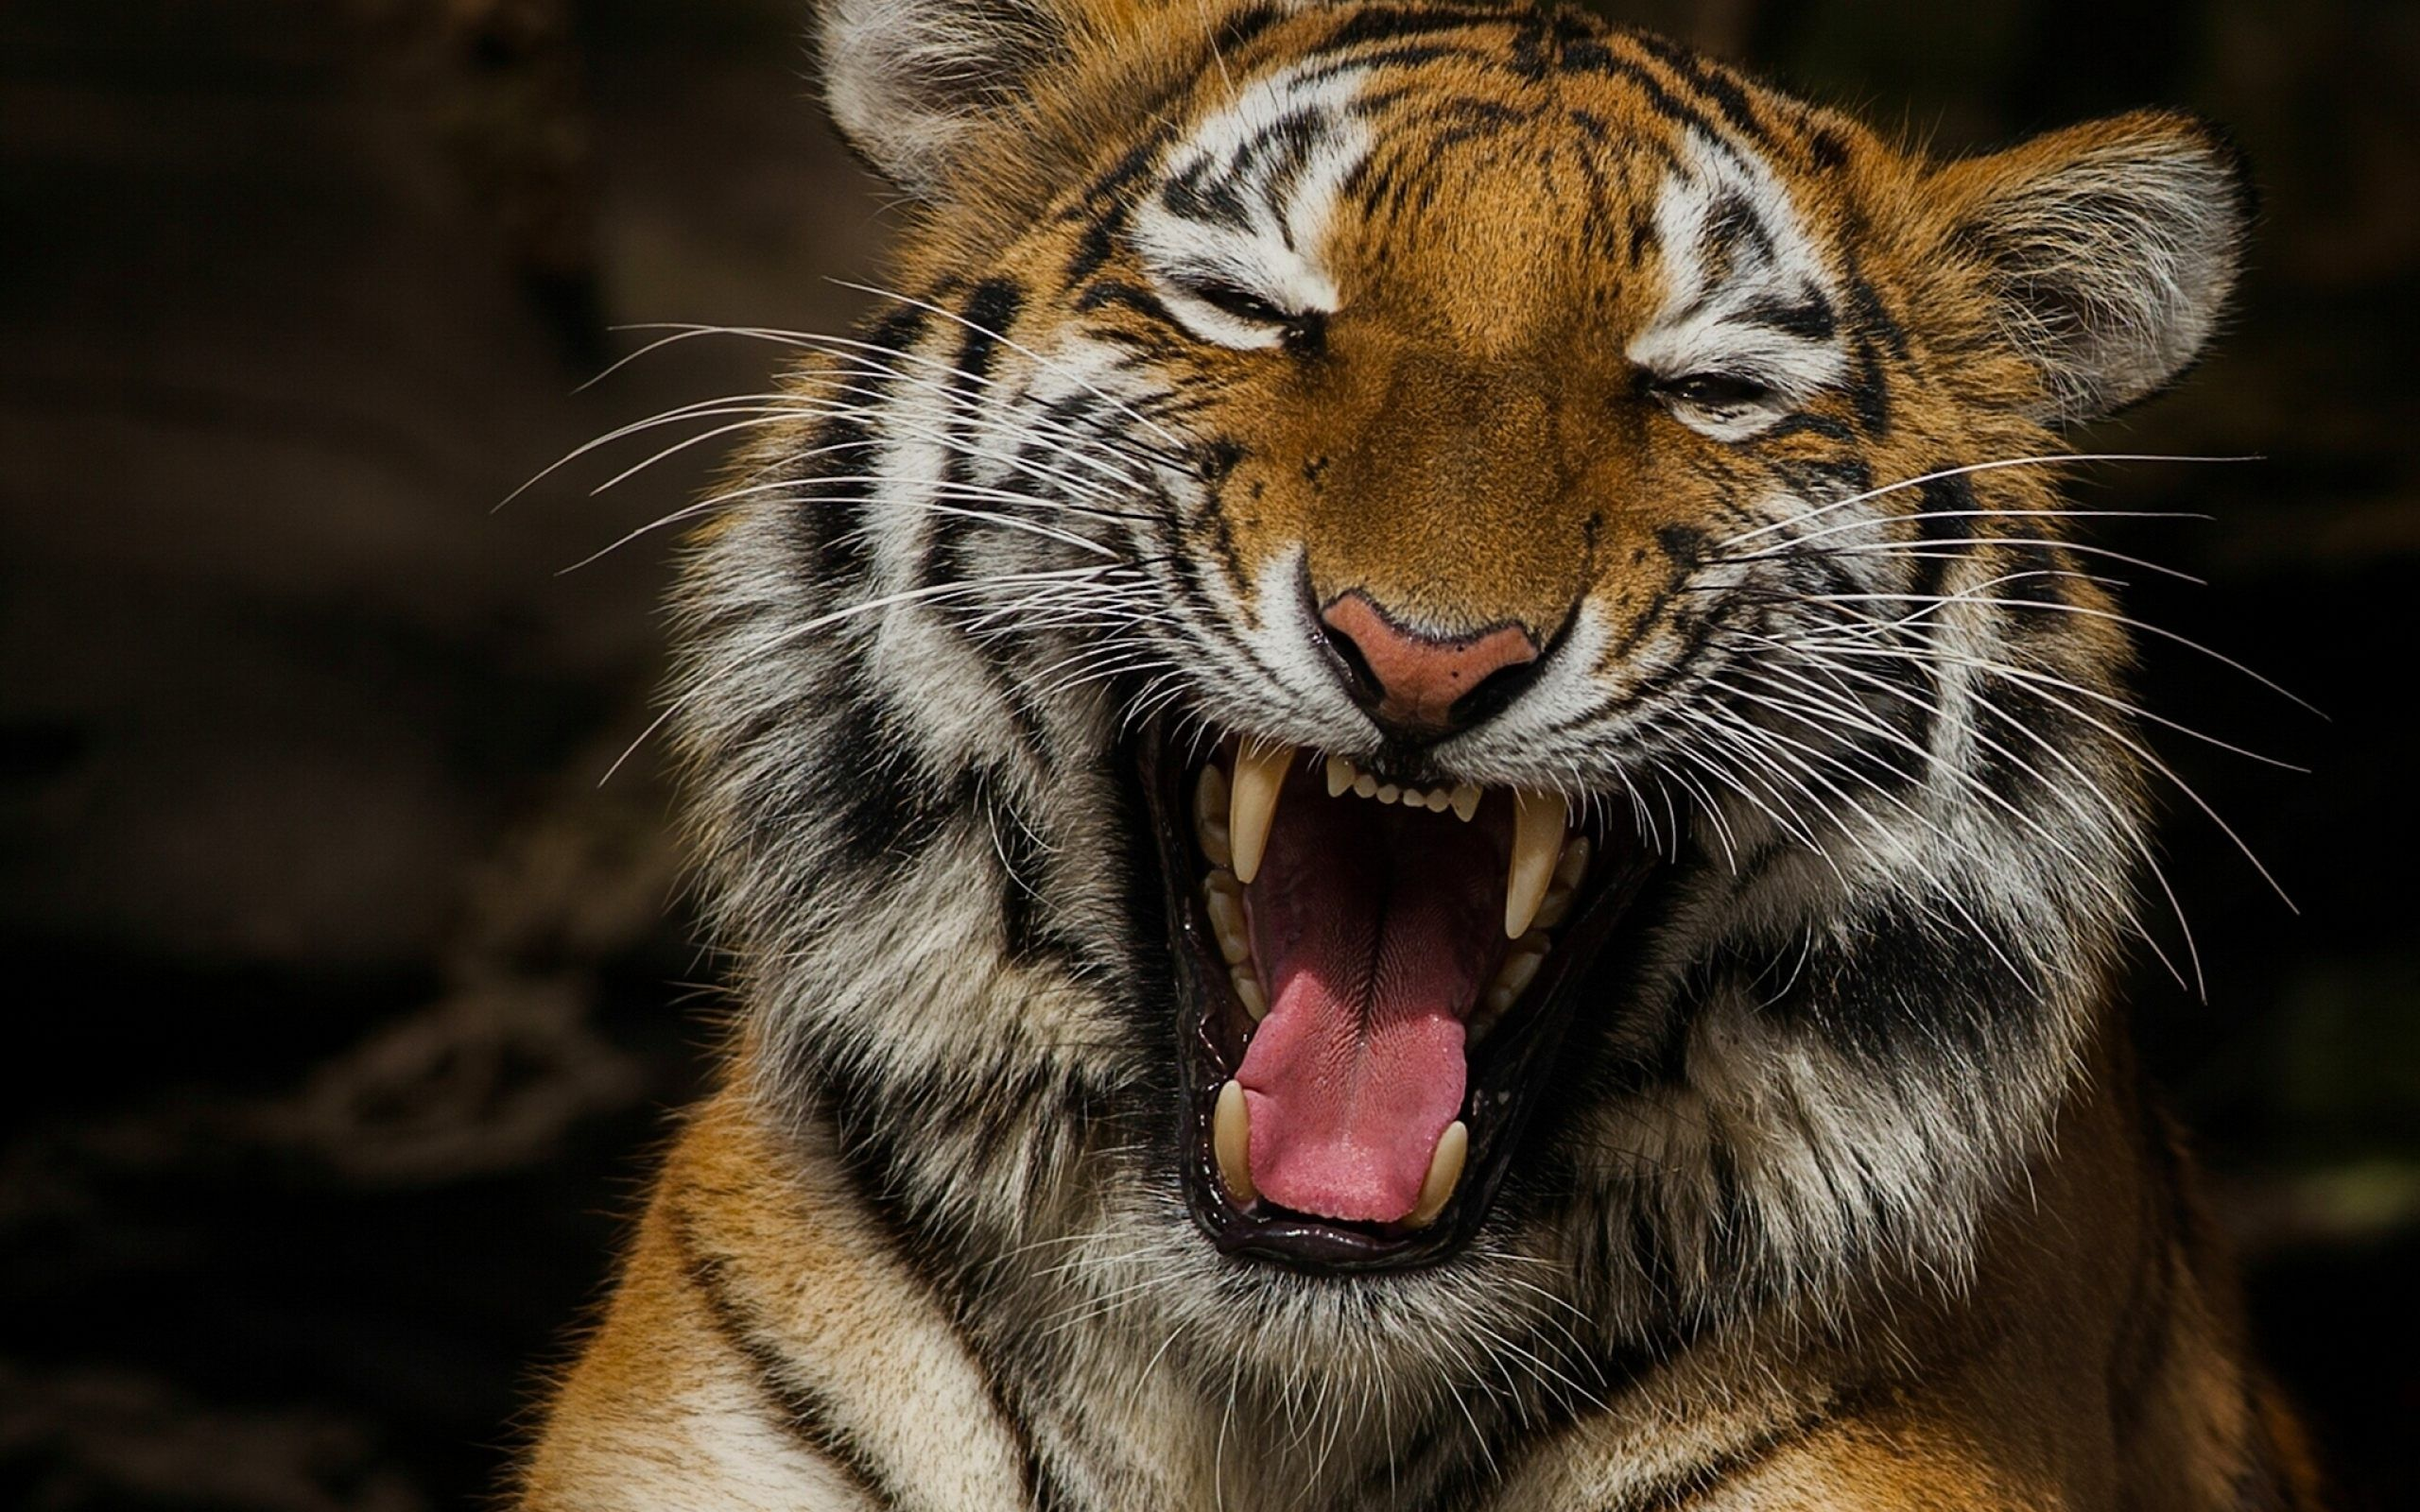 tiger live wallpaper android apps on google play | art wallpapers